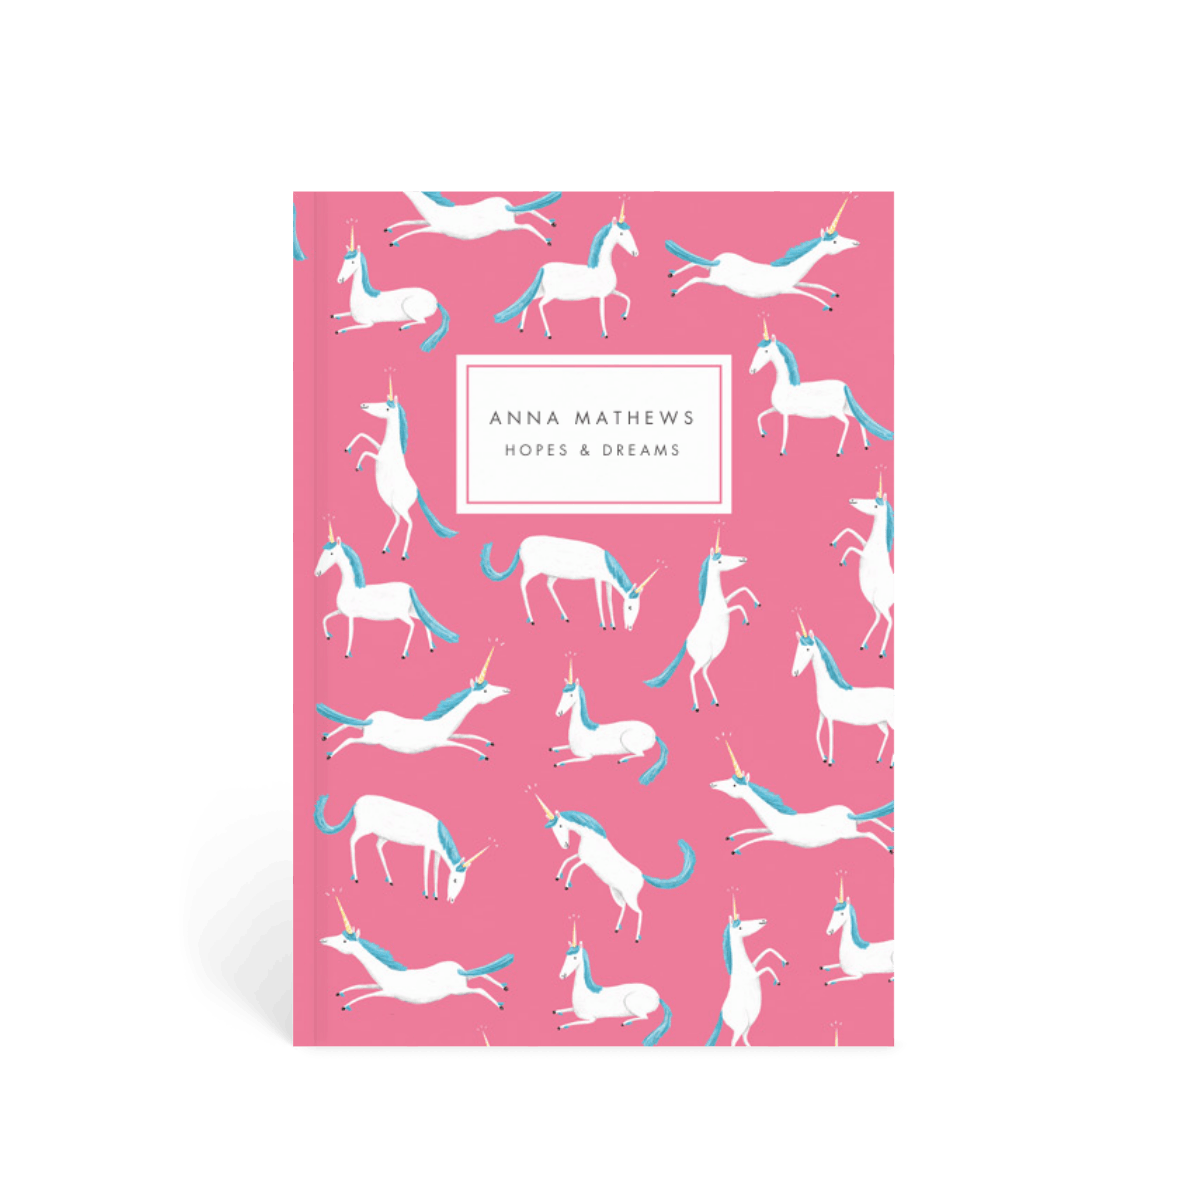 Https%3a%2f%2fwww.papier.com%2fproduct image%2f56379%2f25%2fpink unicorn 13543 front 1542369715.png?ixlib=rb 1.1